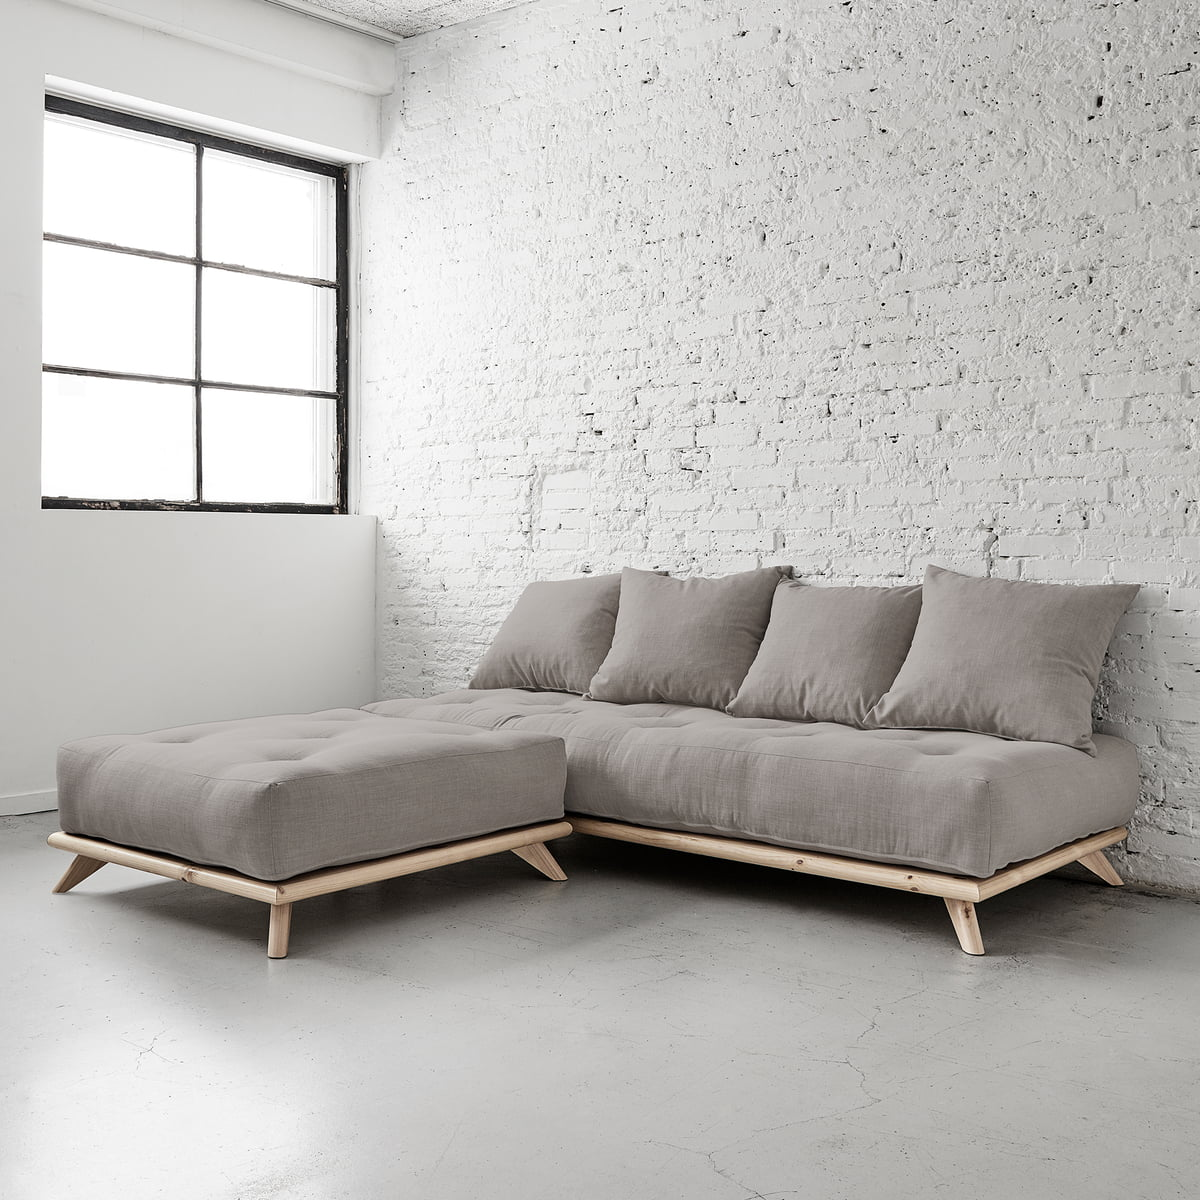 Senza by karup connox shop for Sofa ottomane